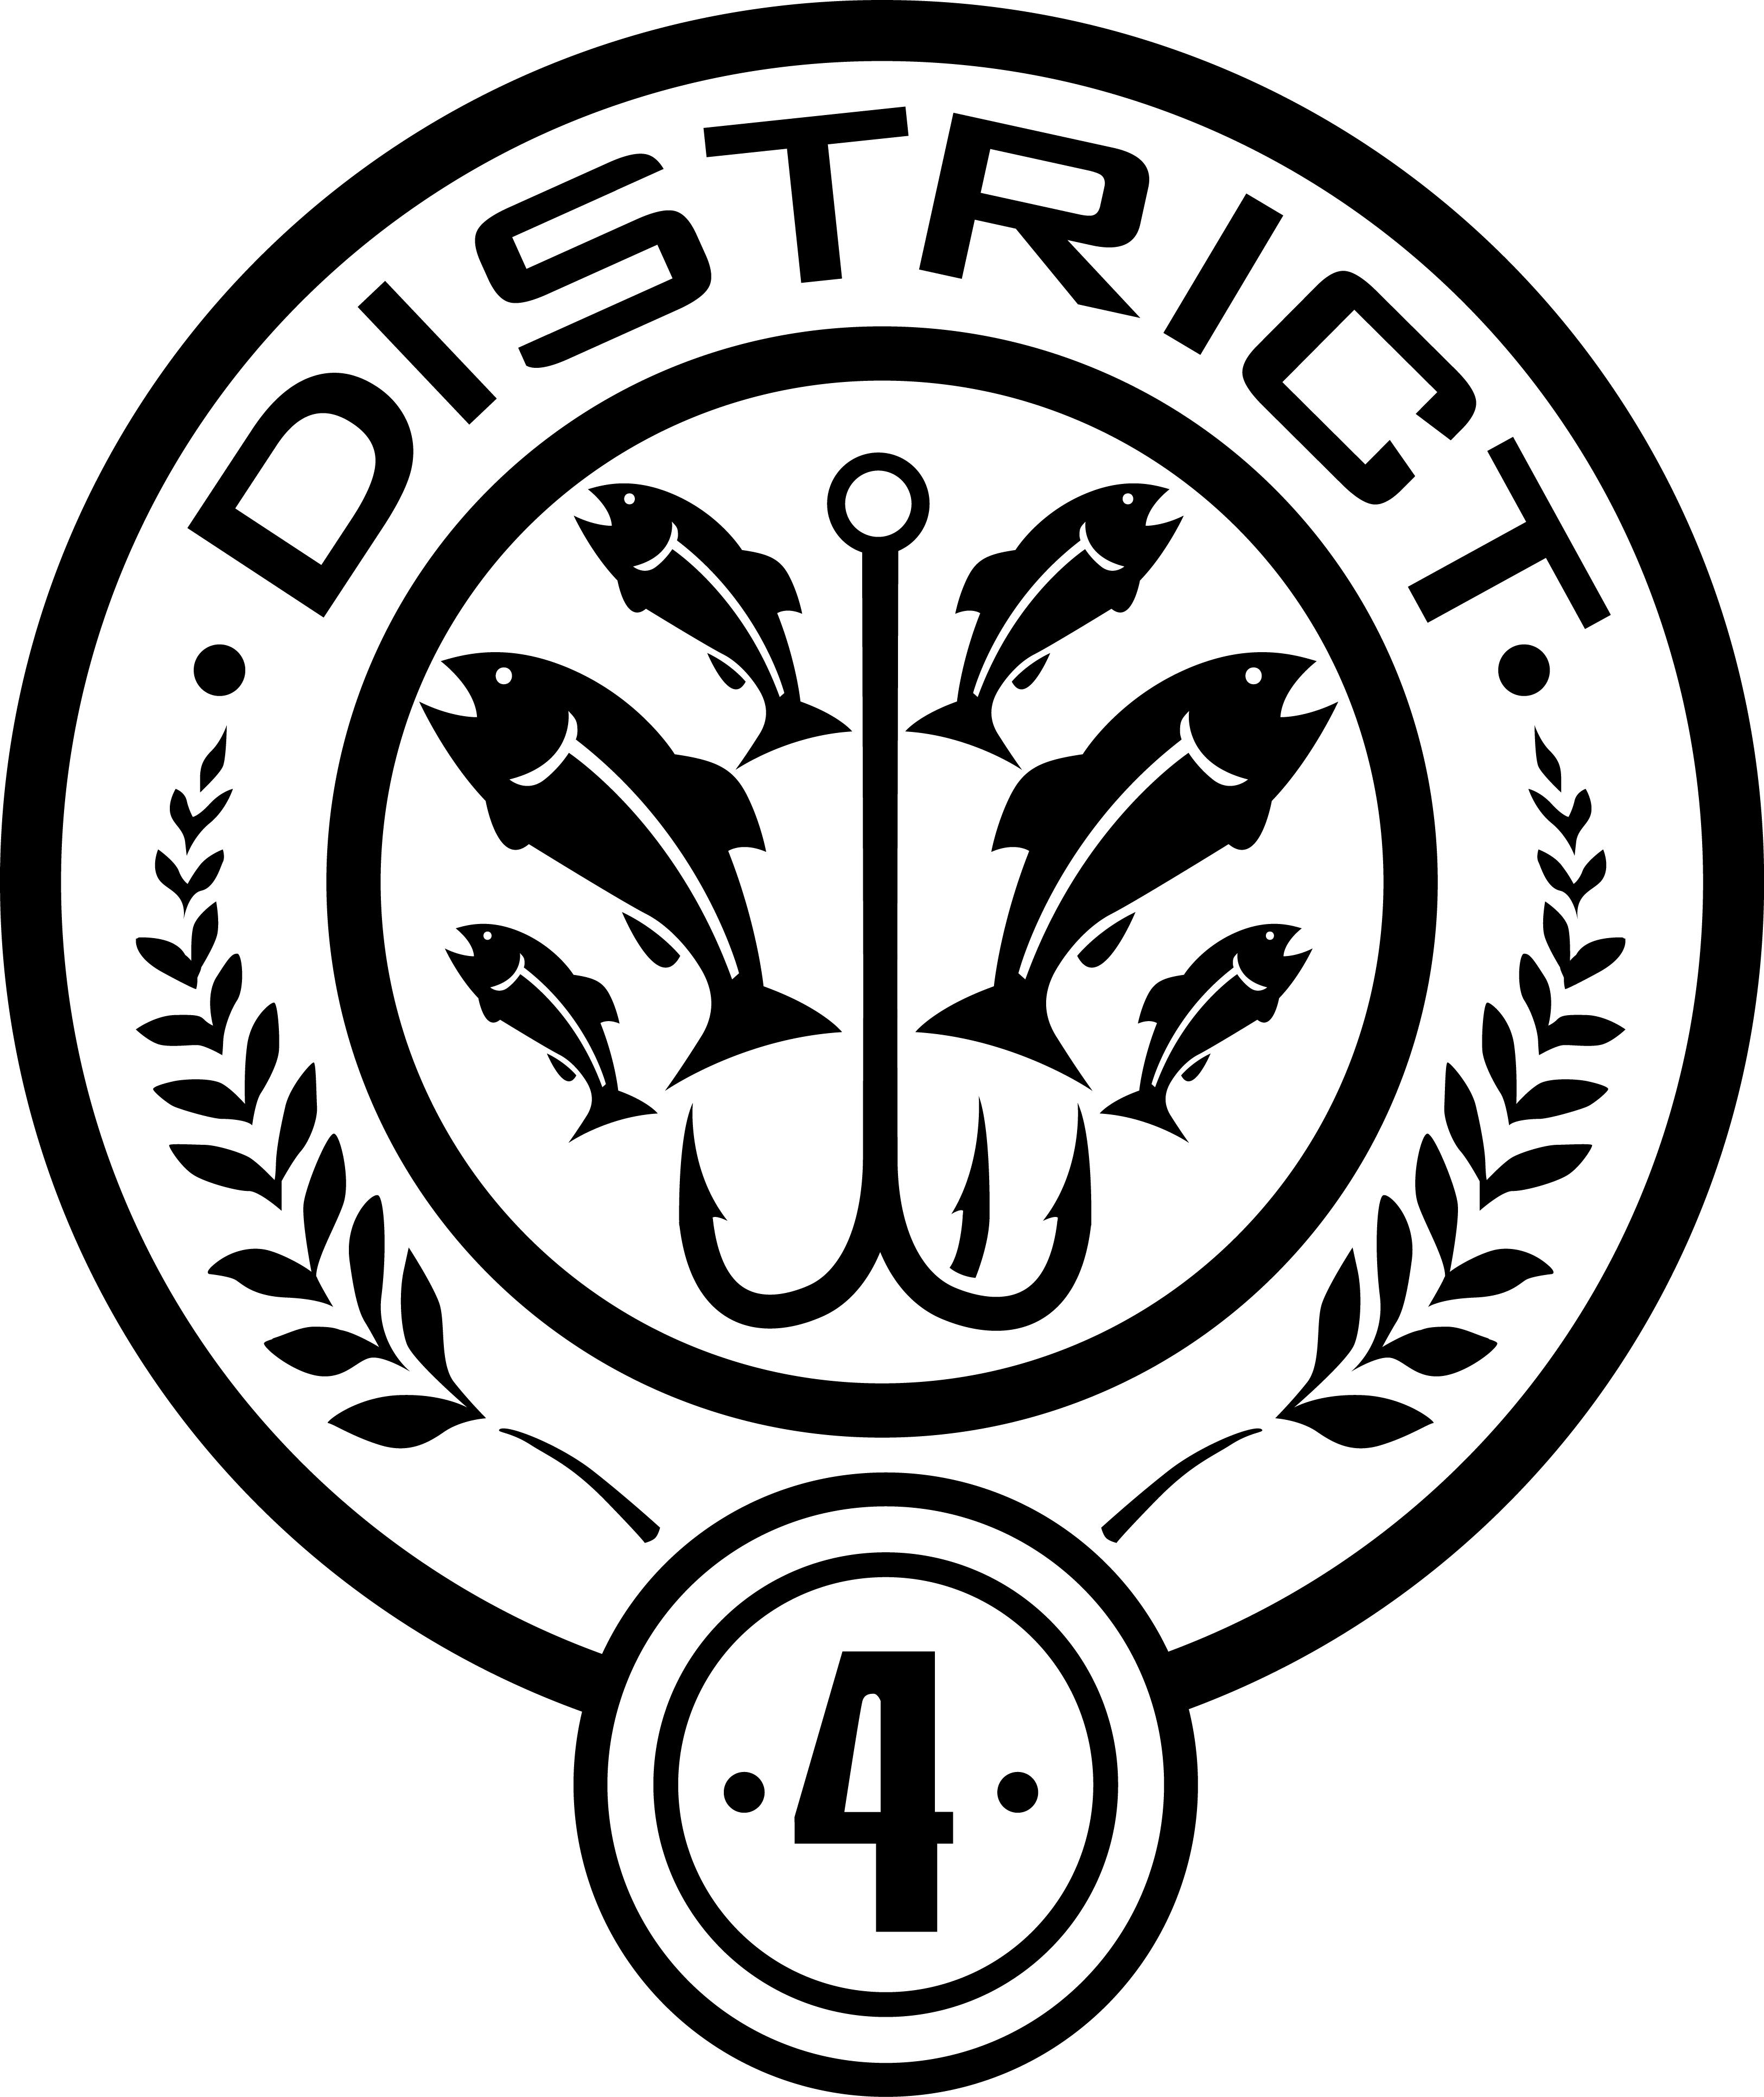 Hunger games by trebory6 on deviantart trebory6 10 0 district 4 seal by trebory6 buycottarizona